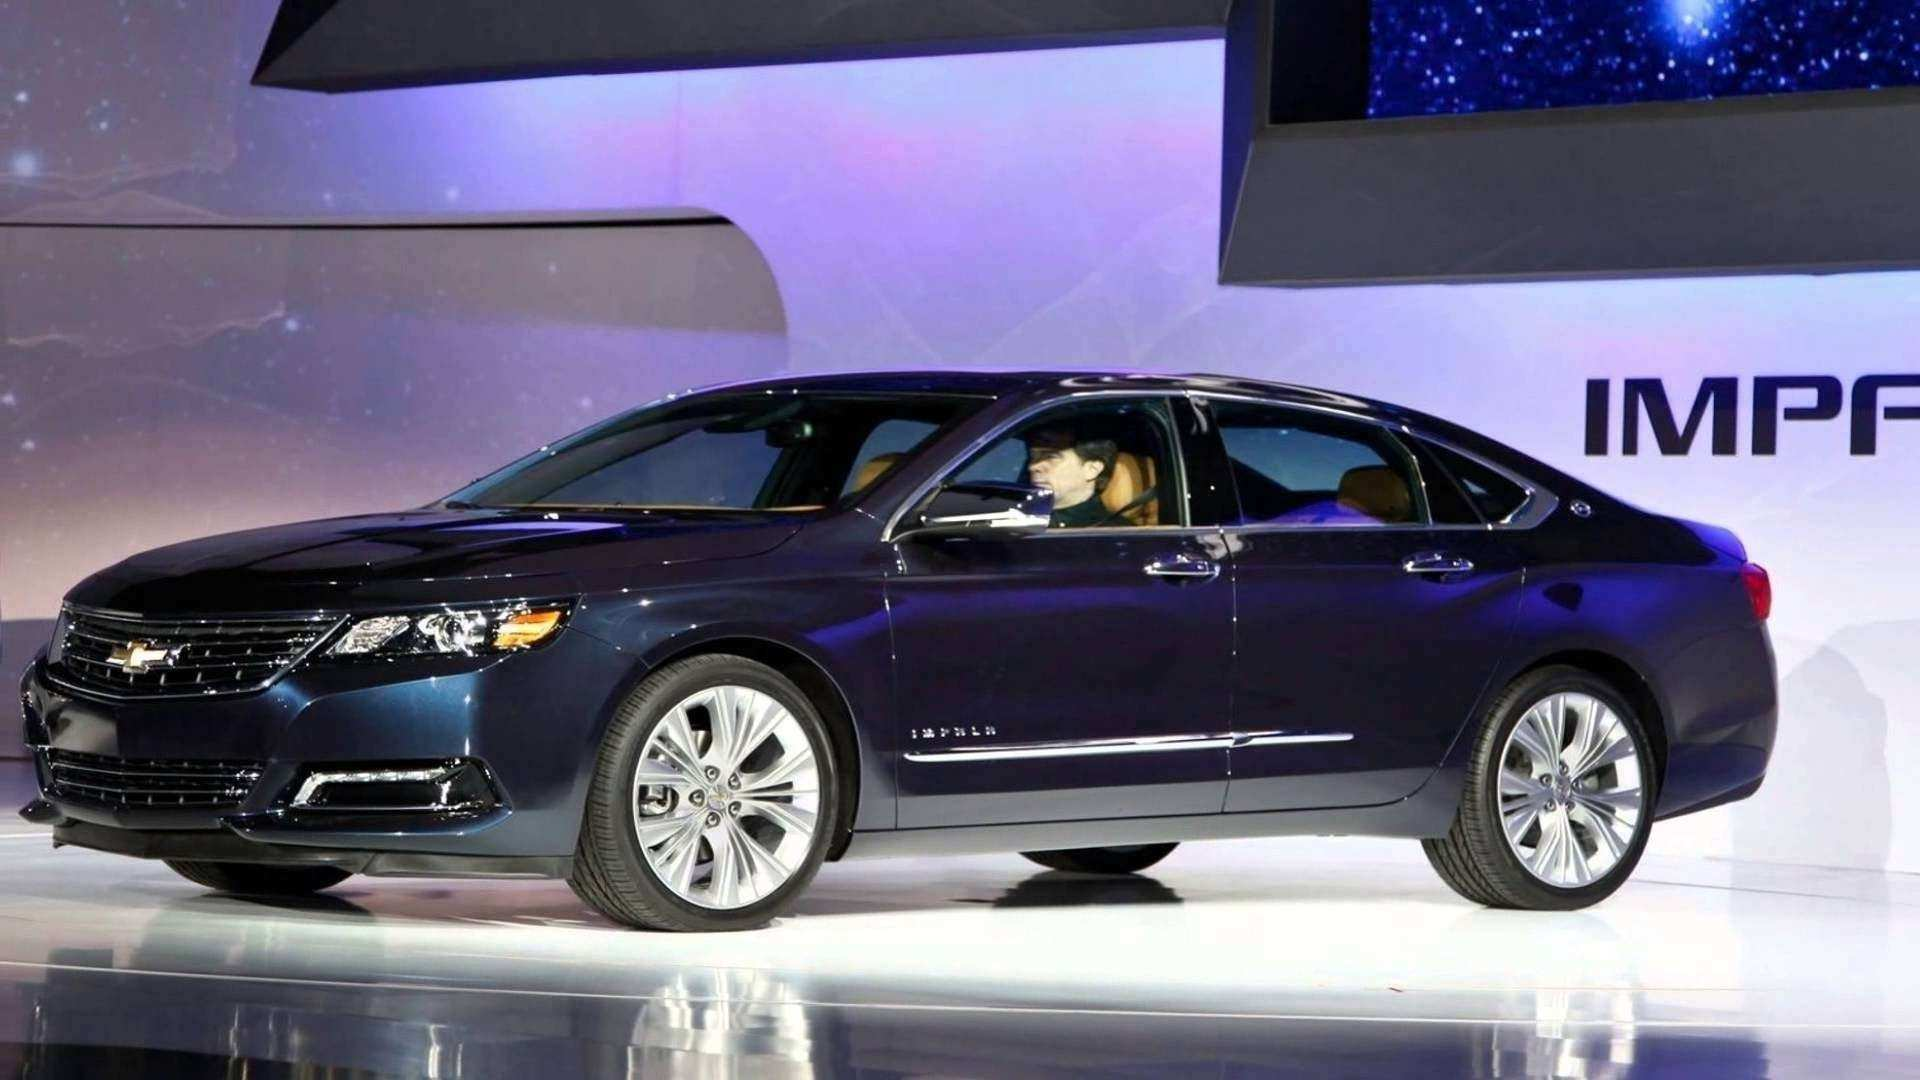 52 All New 2019 Chevy Impala Ss Ltz Exterior